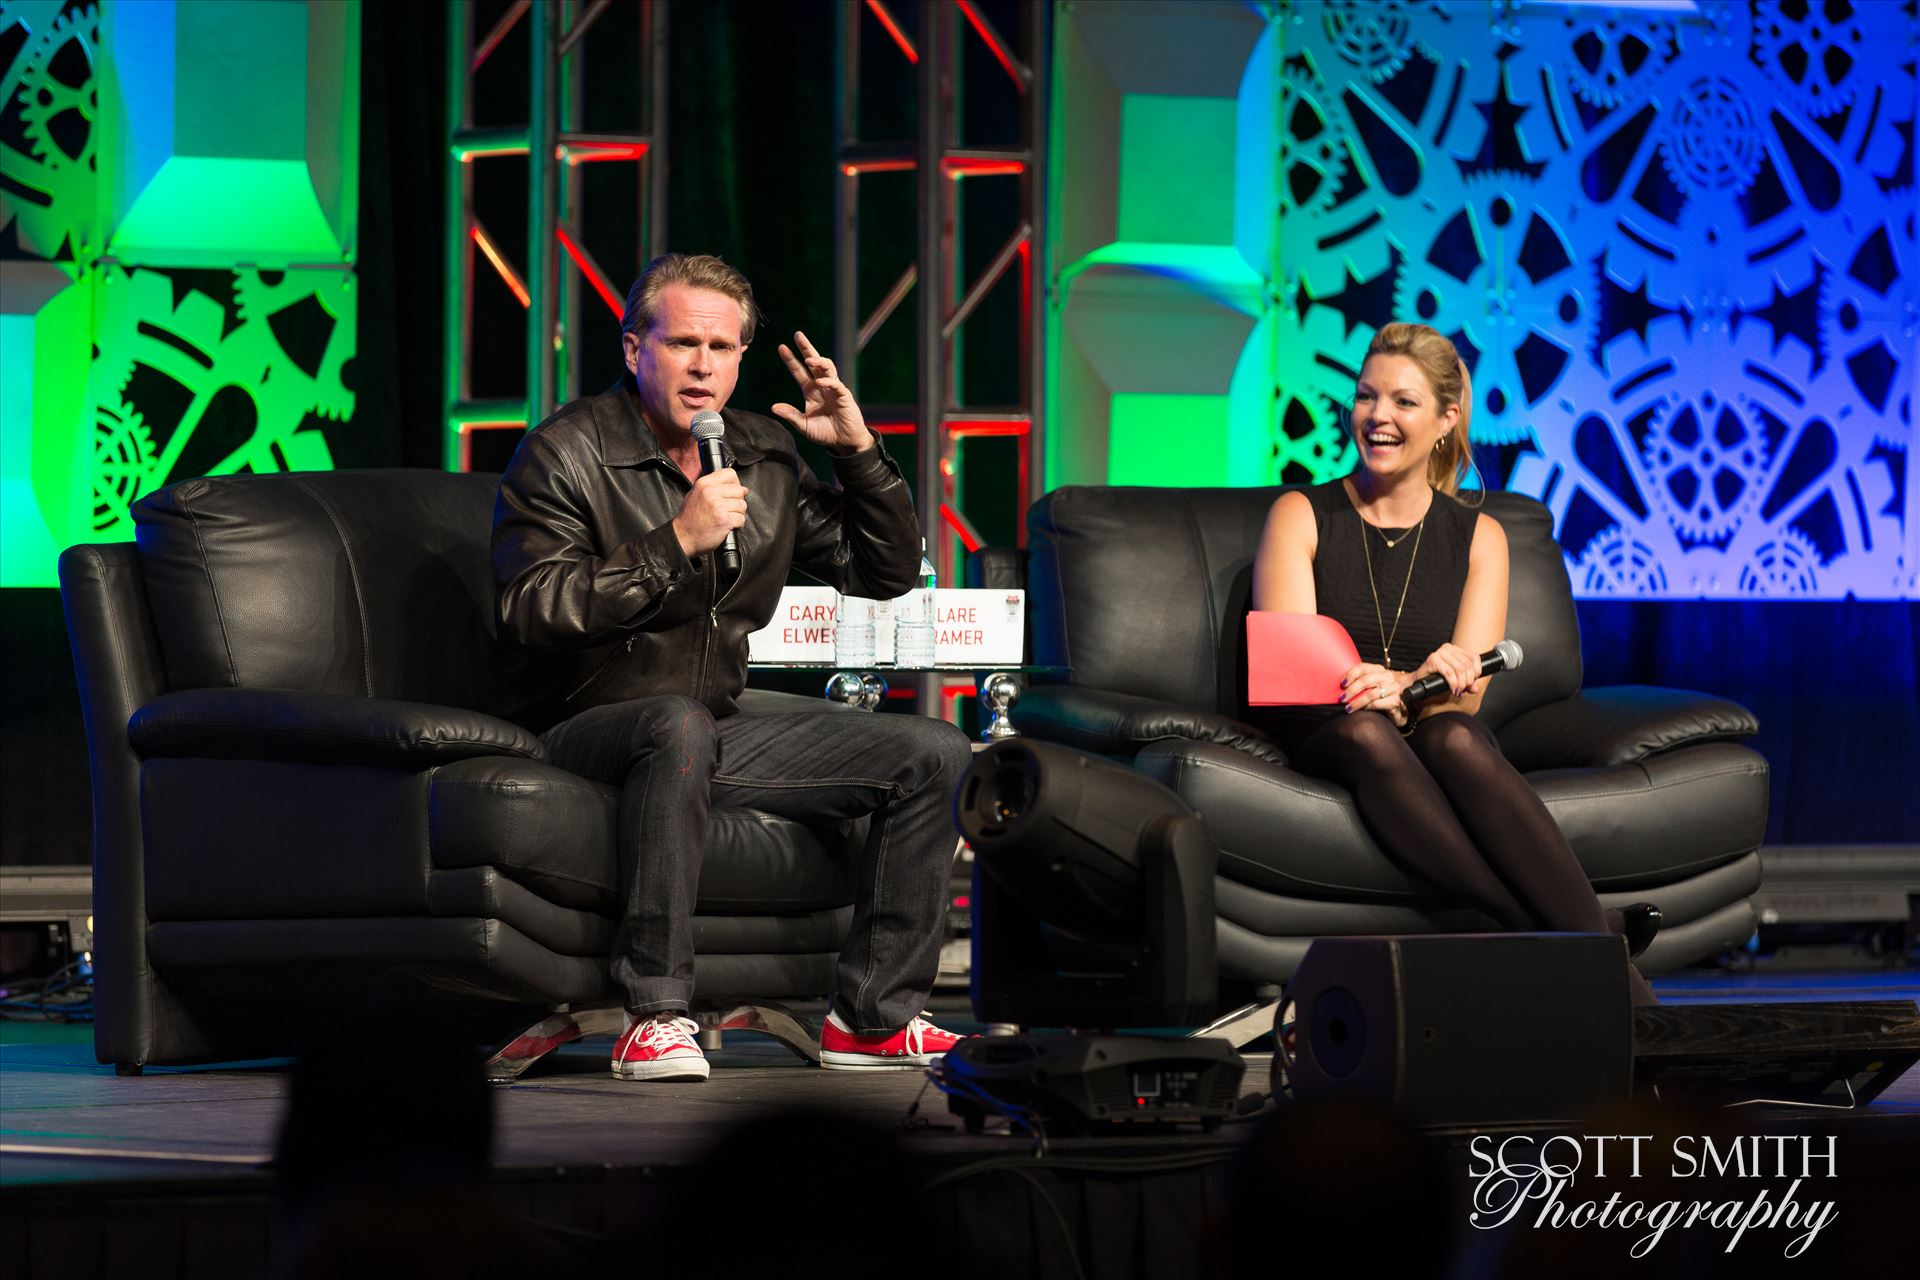 Denver Comic Con 2016 28 - Denver Comic Con 2016 at the Colorado Convention Center. Clare Kramer and Cary Elwes. by D Scott Smith